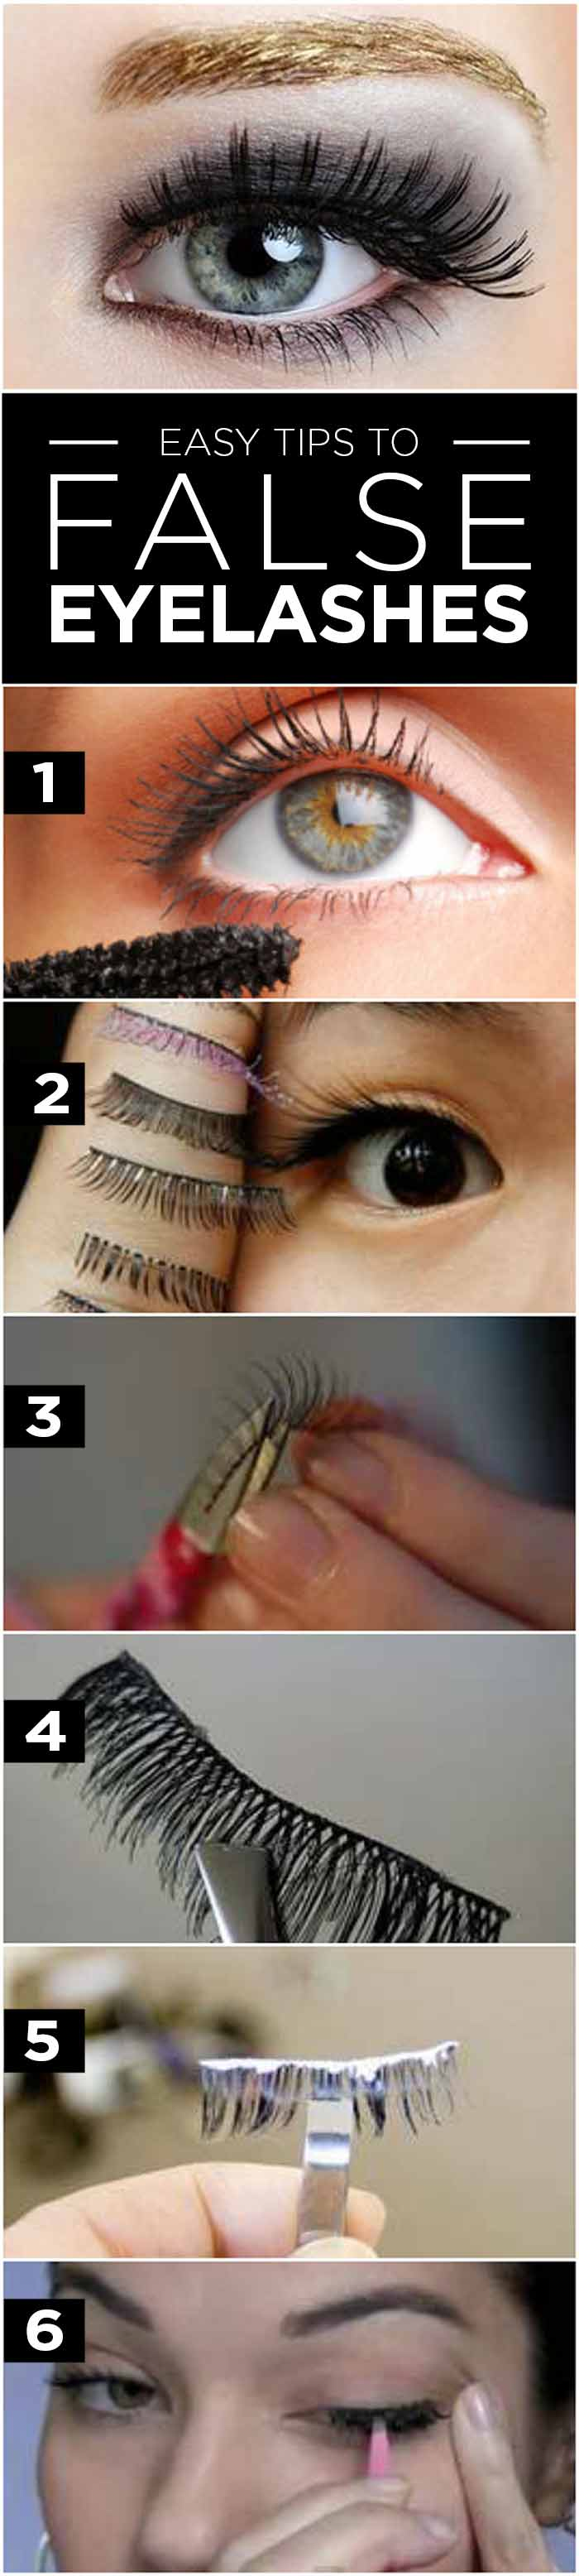 How To Apply False Eyelashes Stepwise Tutorial And Tips